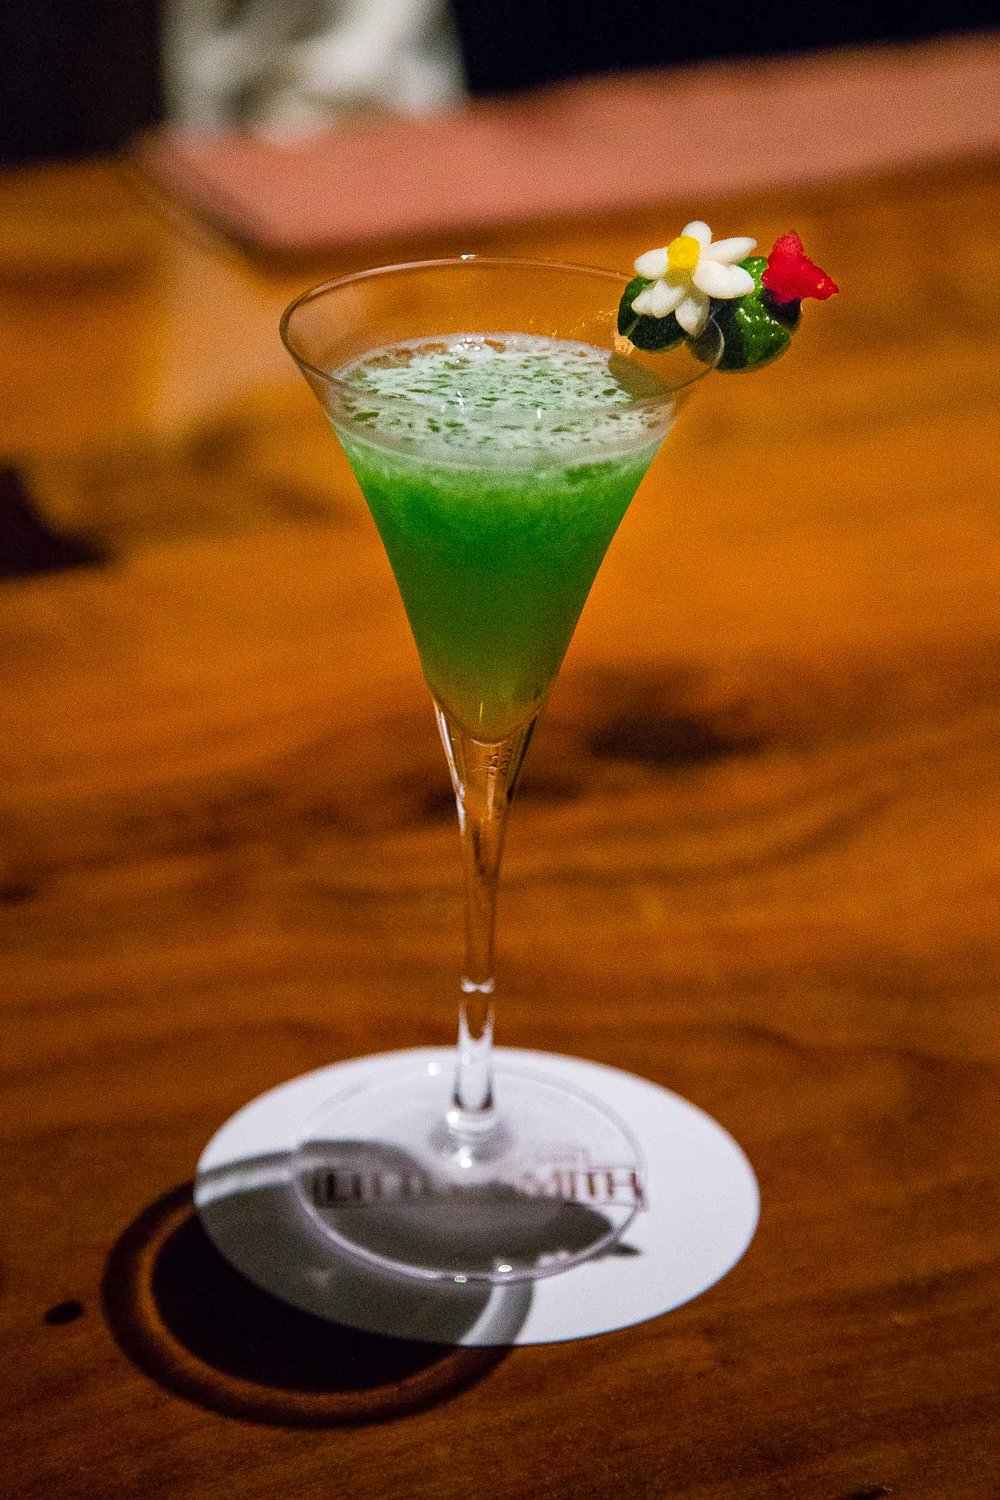 Matcha and yuzu cocktail, winner one year for best original cocktail in Japan